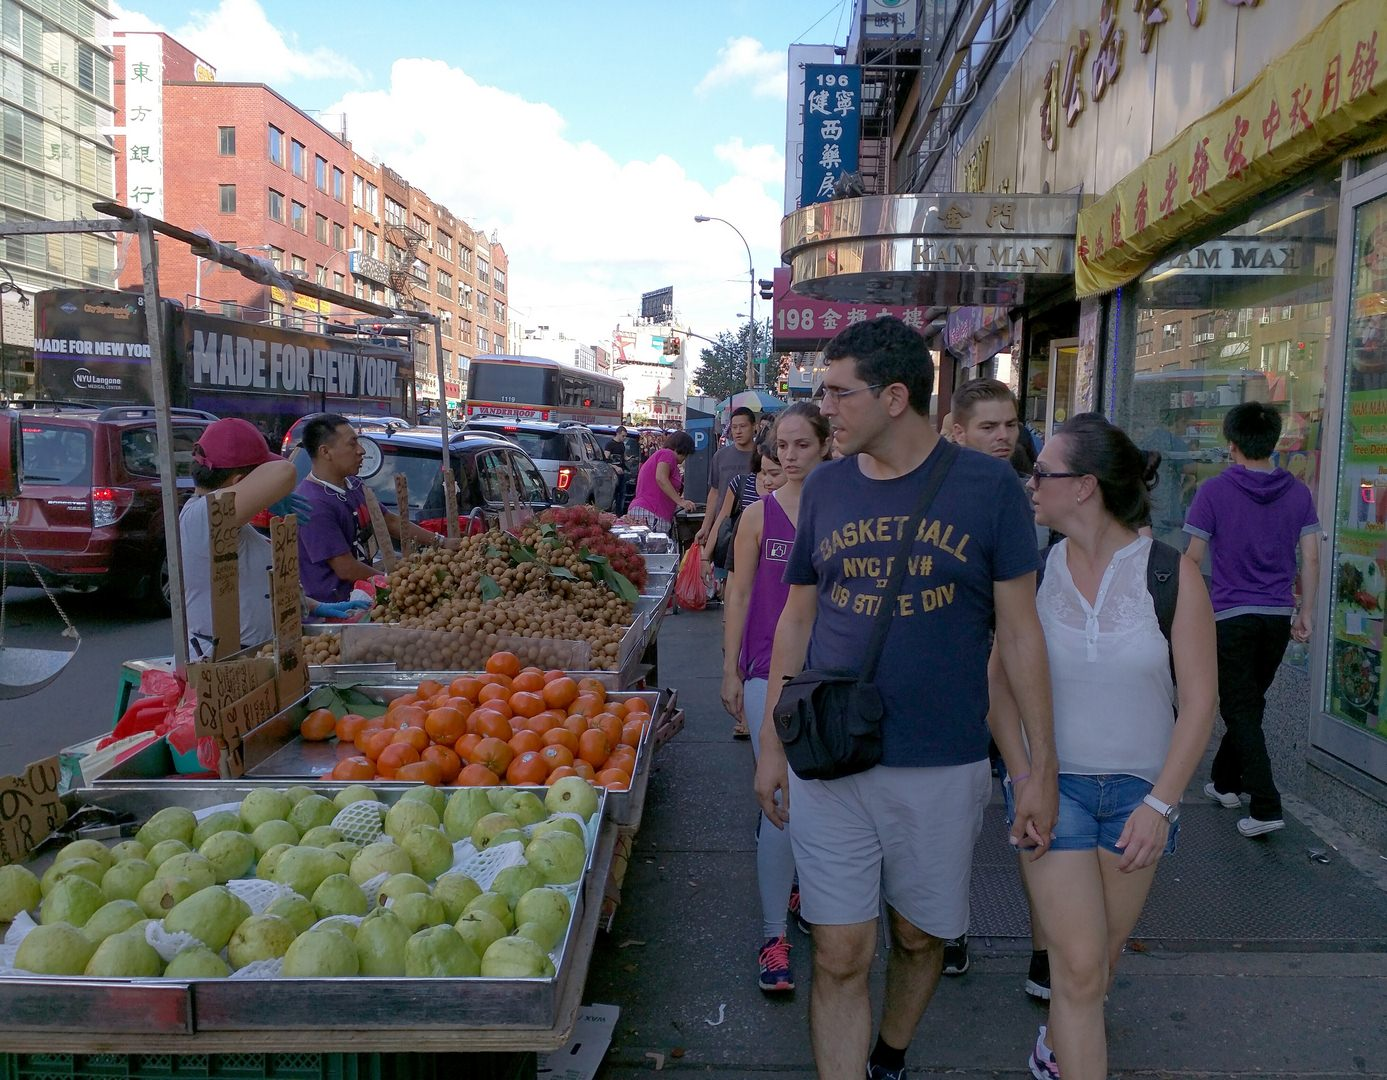 In New York City's Chinatown foods can be sold from the sidewalk. Note how the pedestrians' eyes are drawn to the produce.  (Photo by Alexander Dukes)